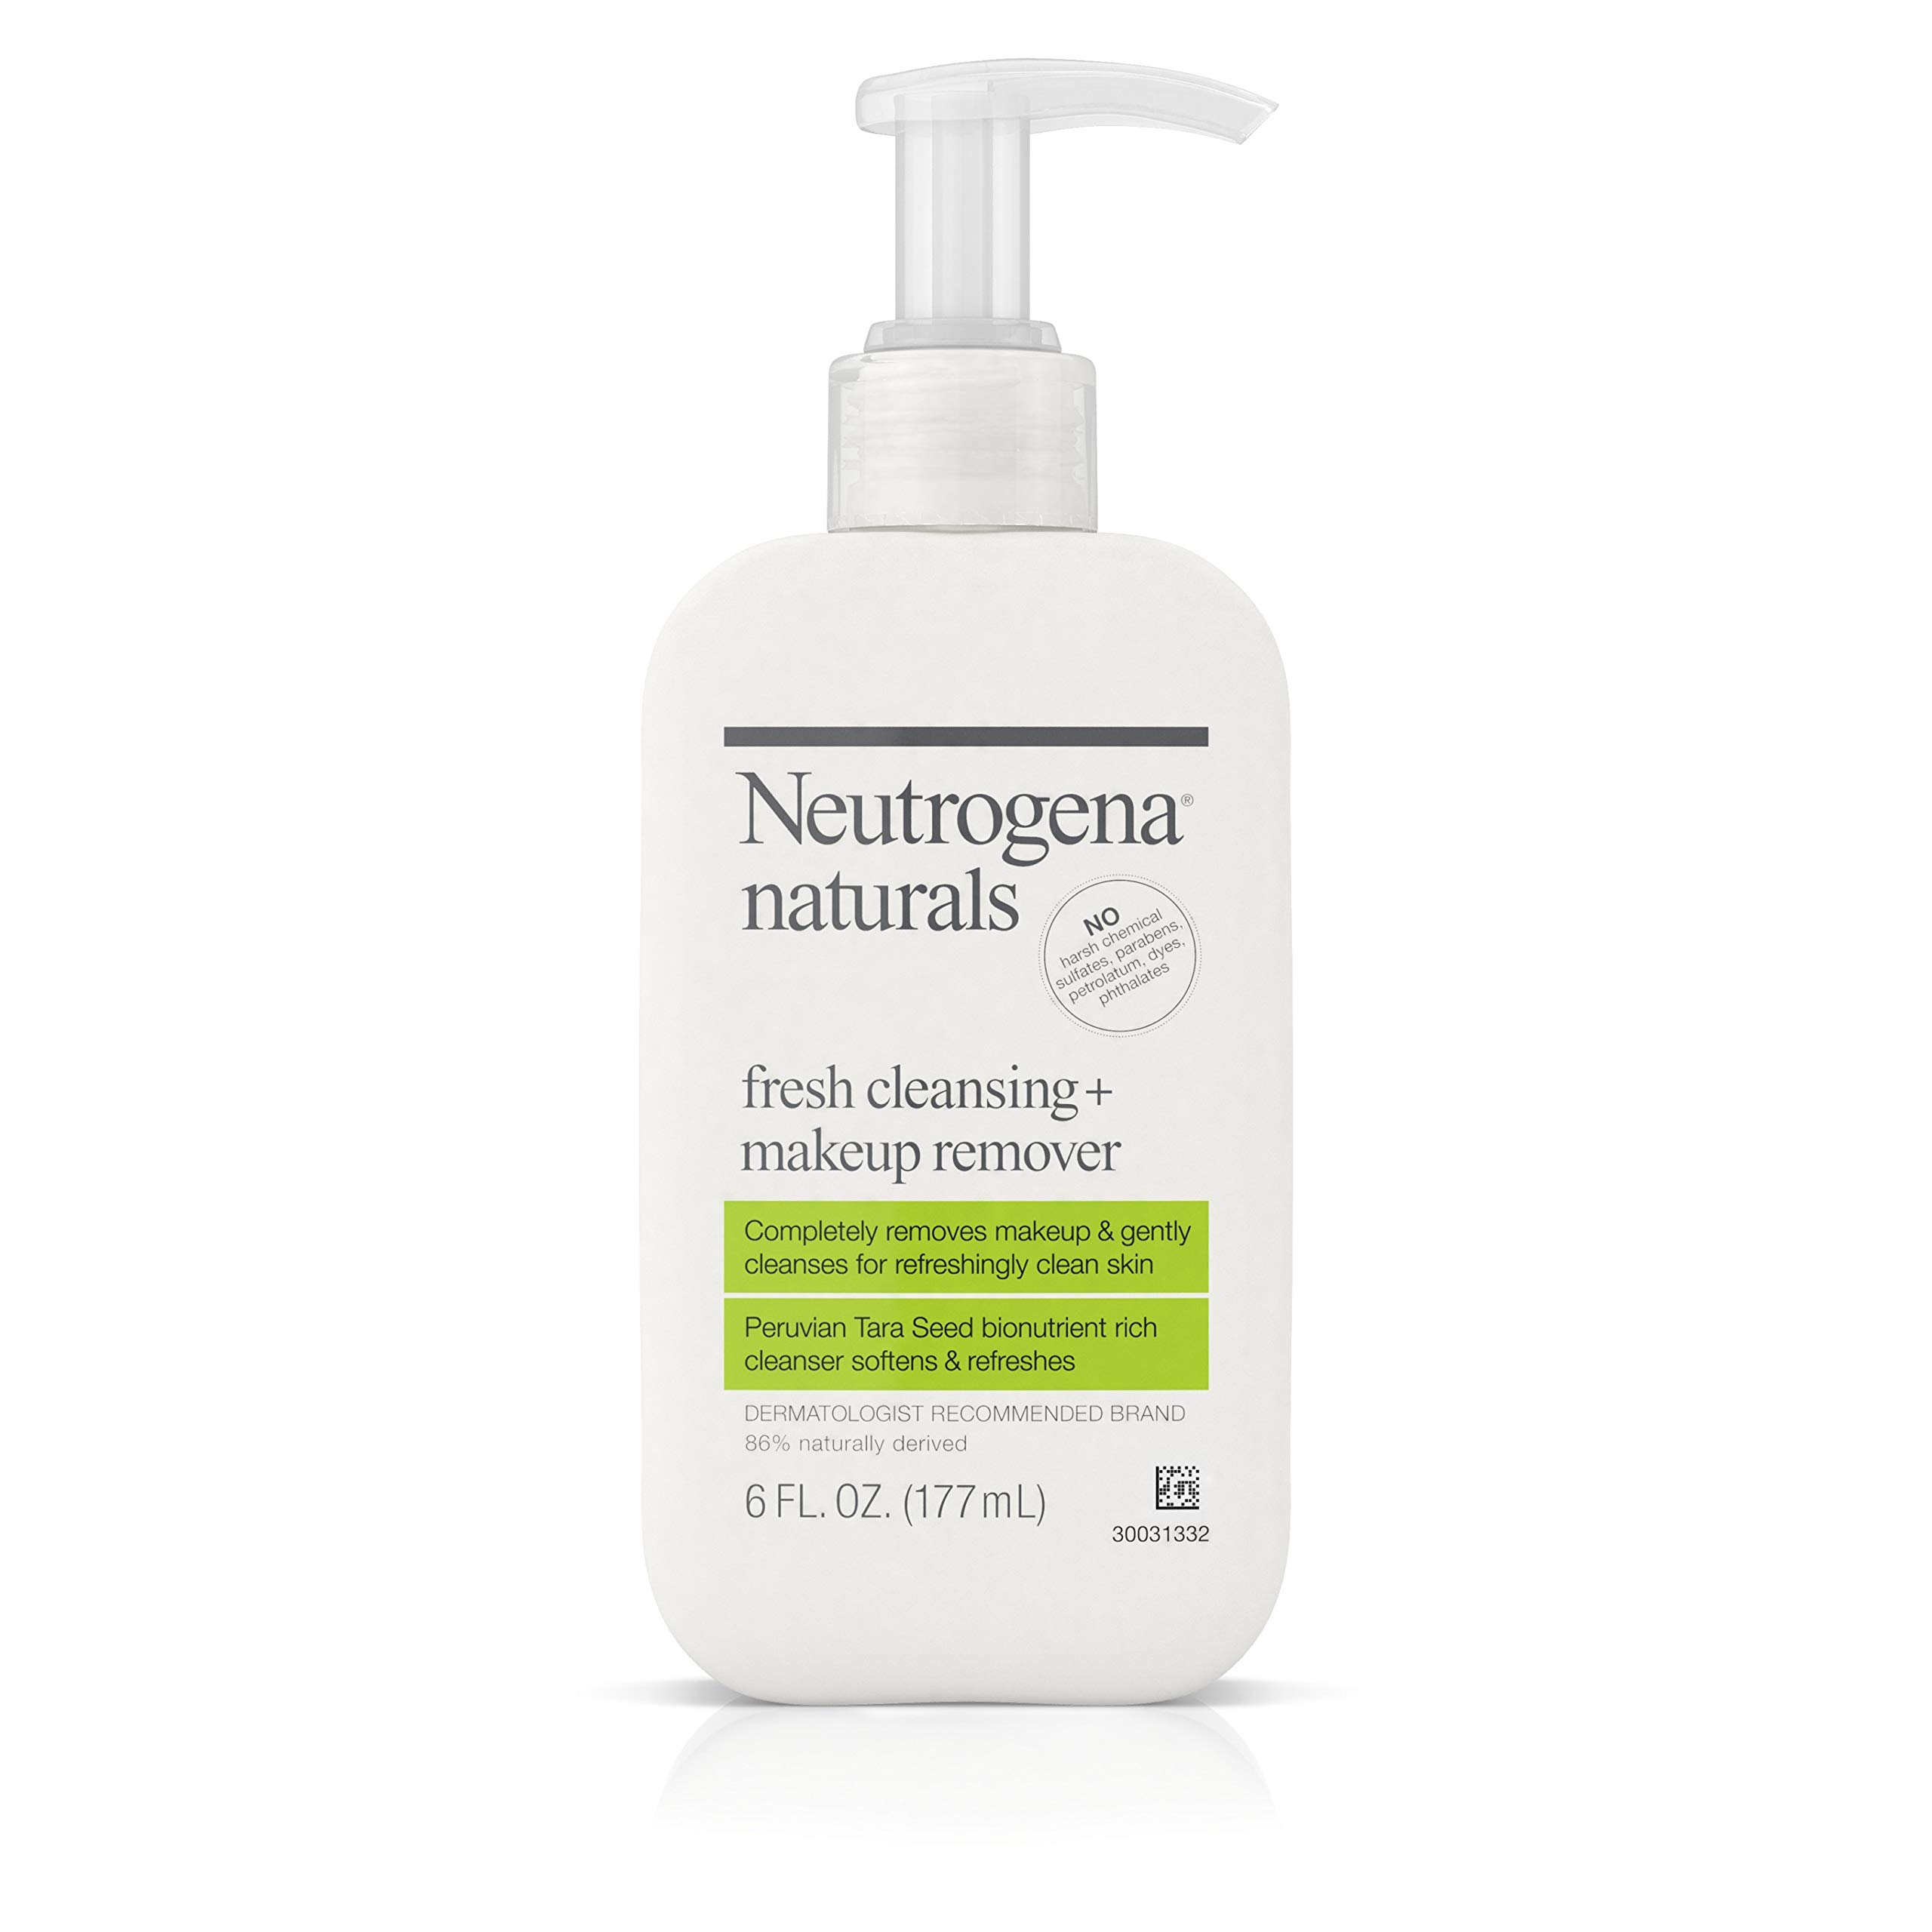 Neutrogena Naturals Fresh Cleansing Daily Face Wash + Makeup Remover with Naturally-Derived Peruvian Tara Seed, Hypoallergenic, Non-Comedogenic & Sulfate-, Paraben- & Phthalate-Free, 6 fl. Oz (2 Pack) by Neutrogena